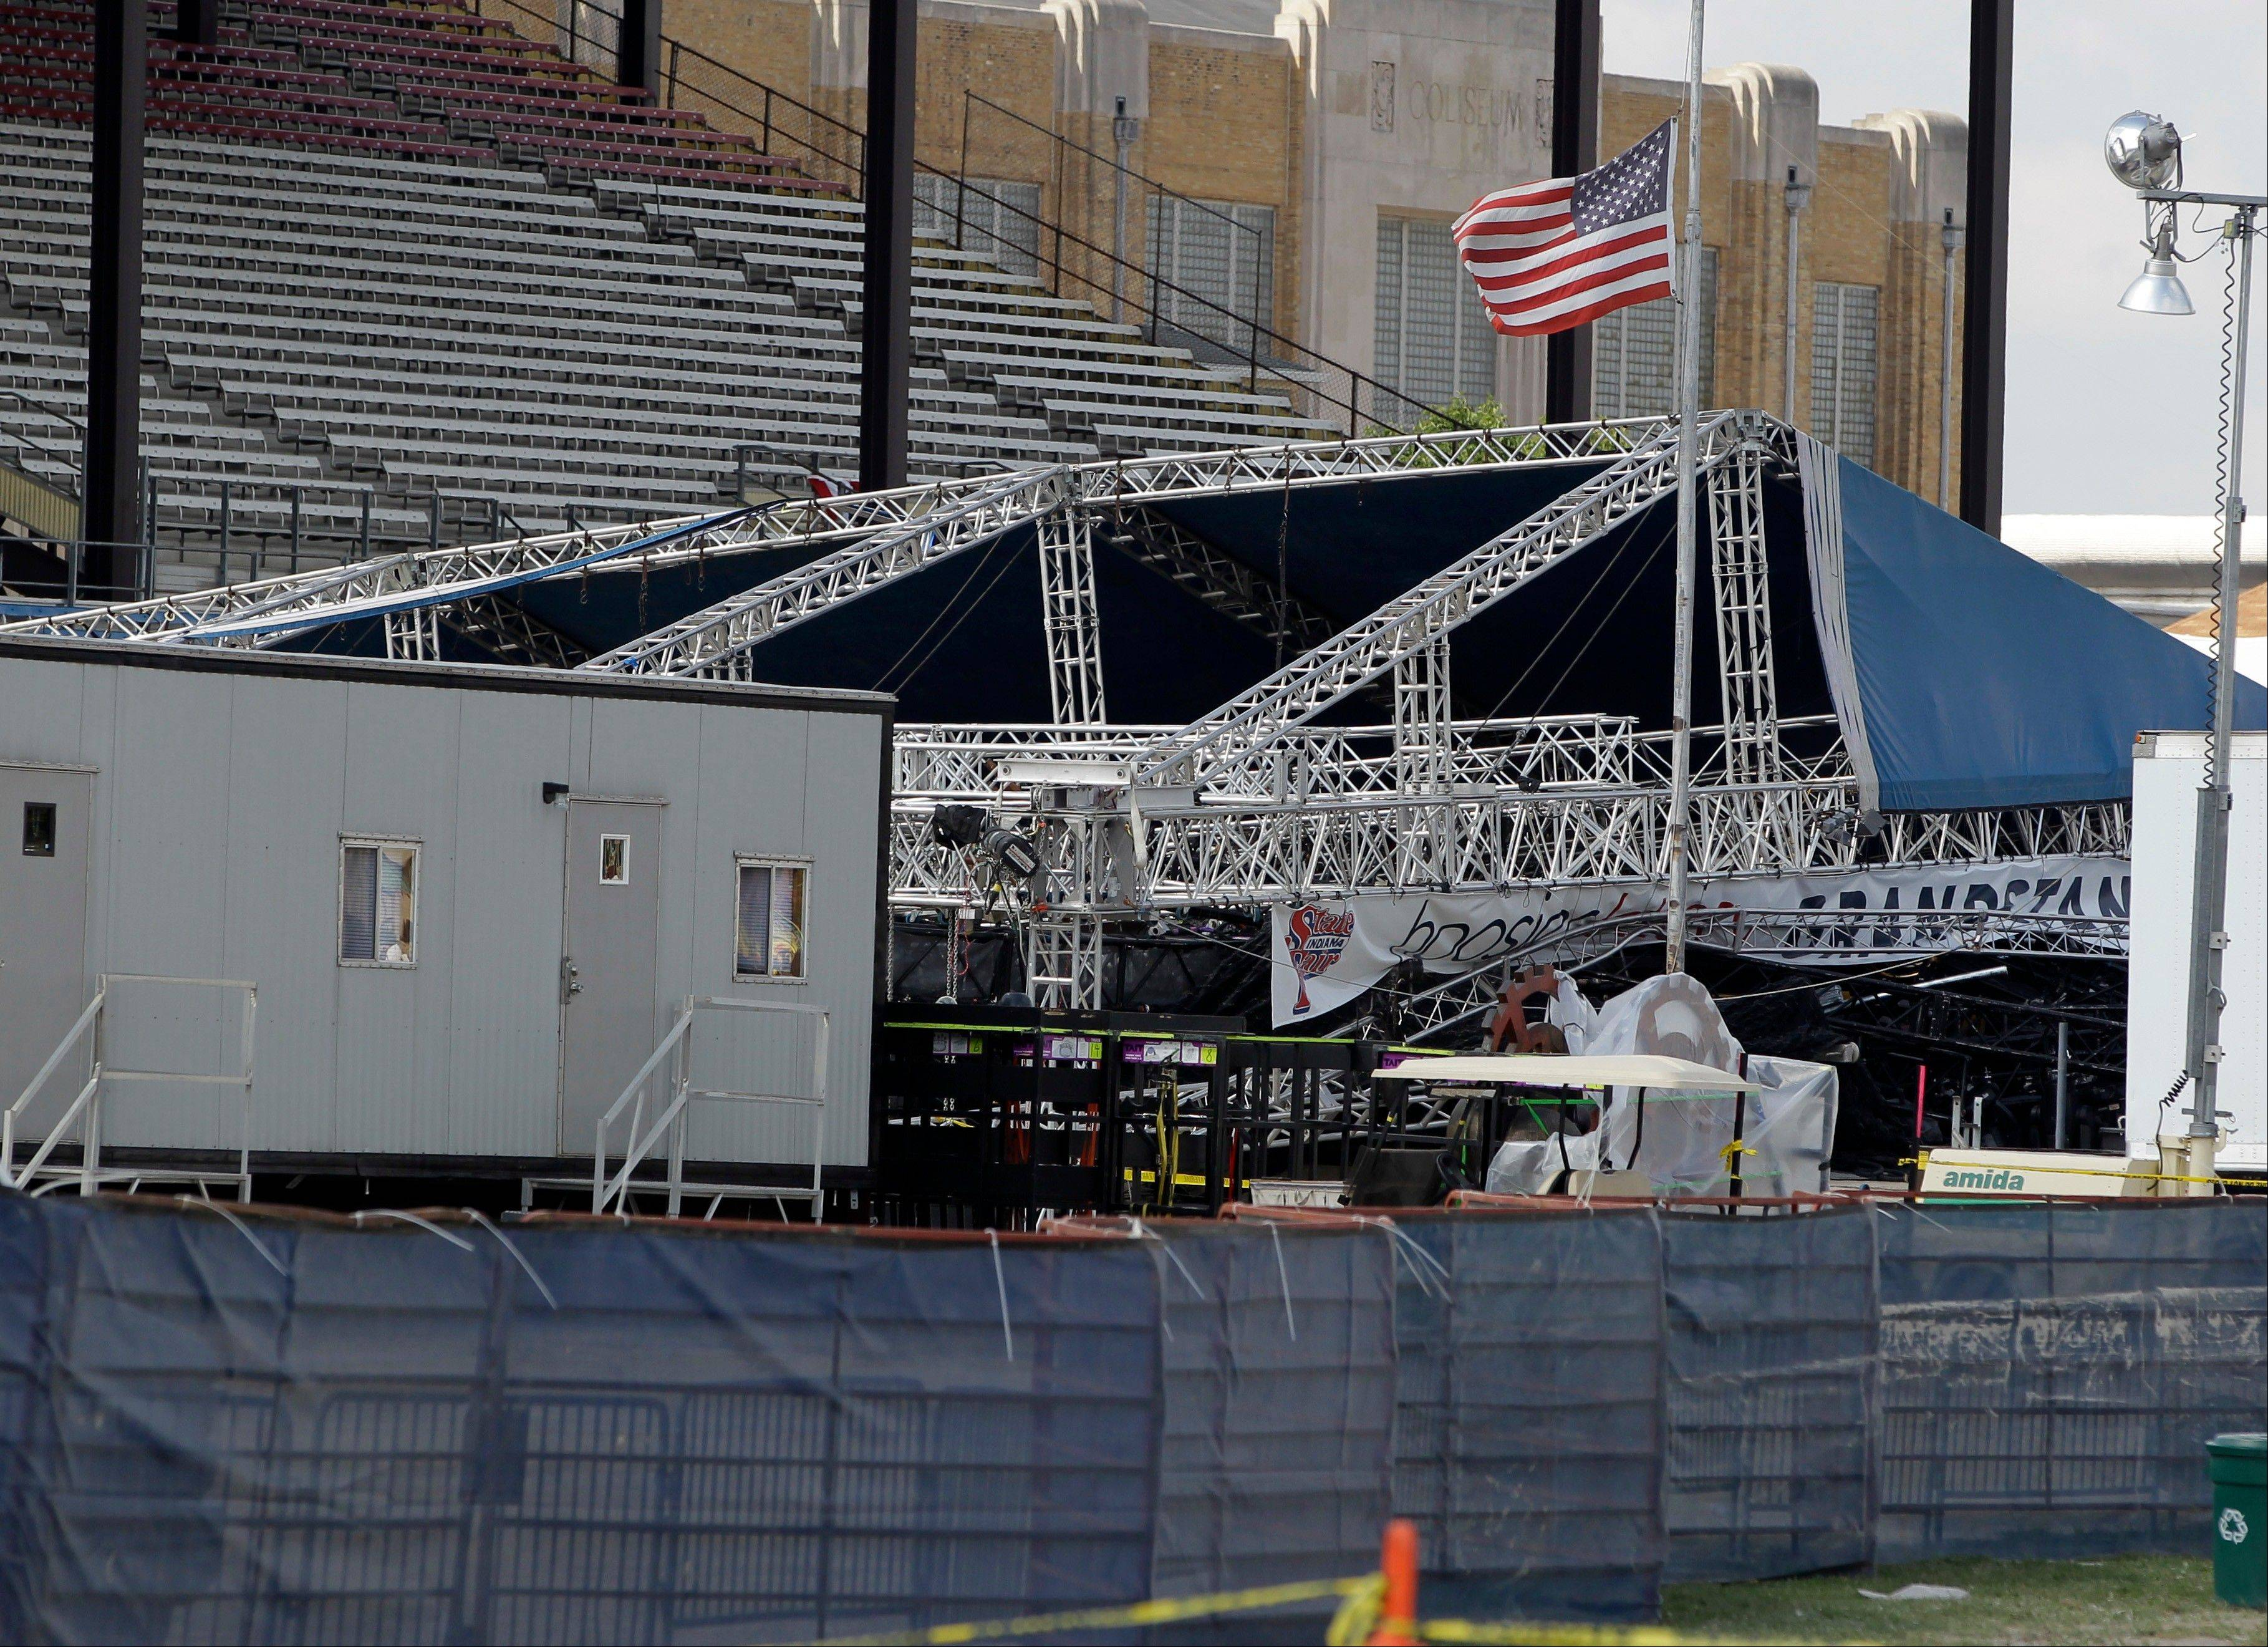 Indiana fair officials quiet about stage inspection